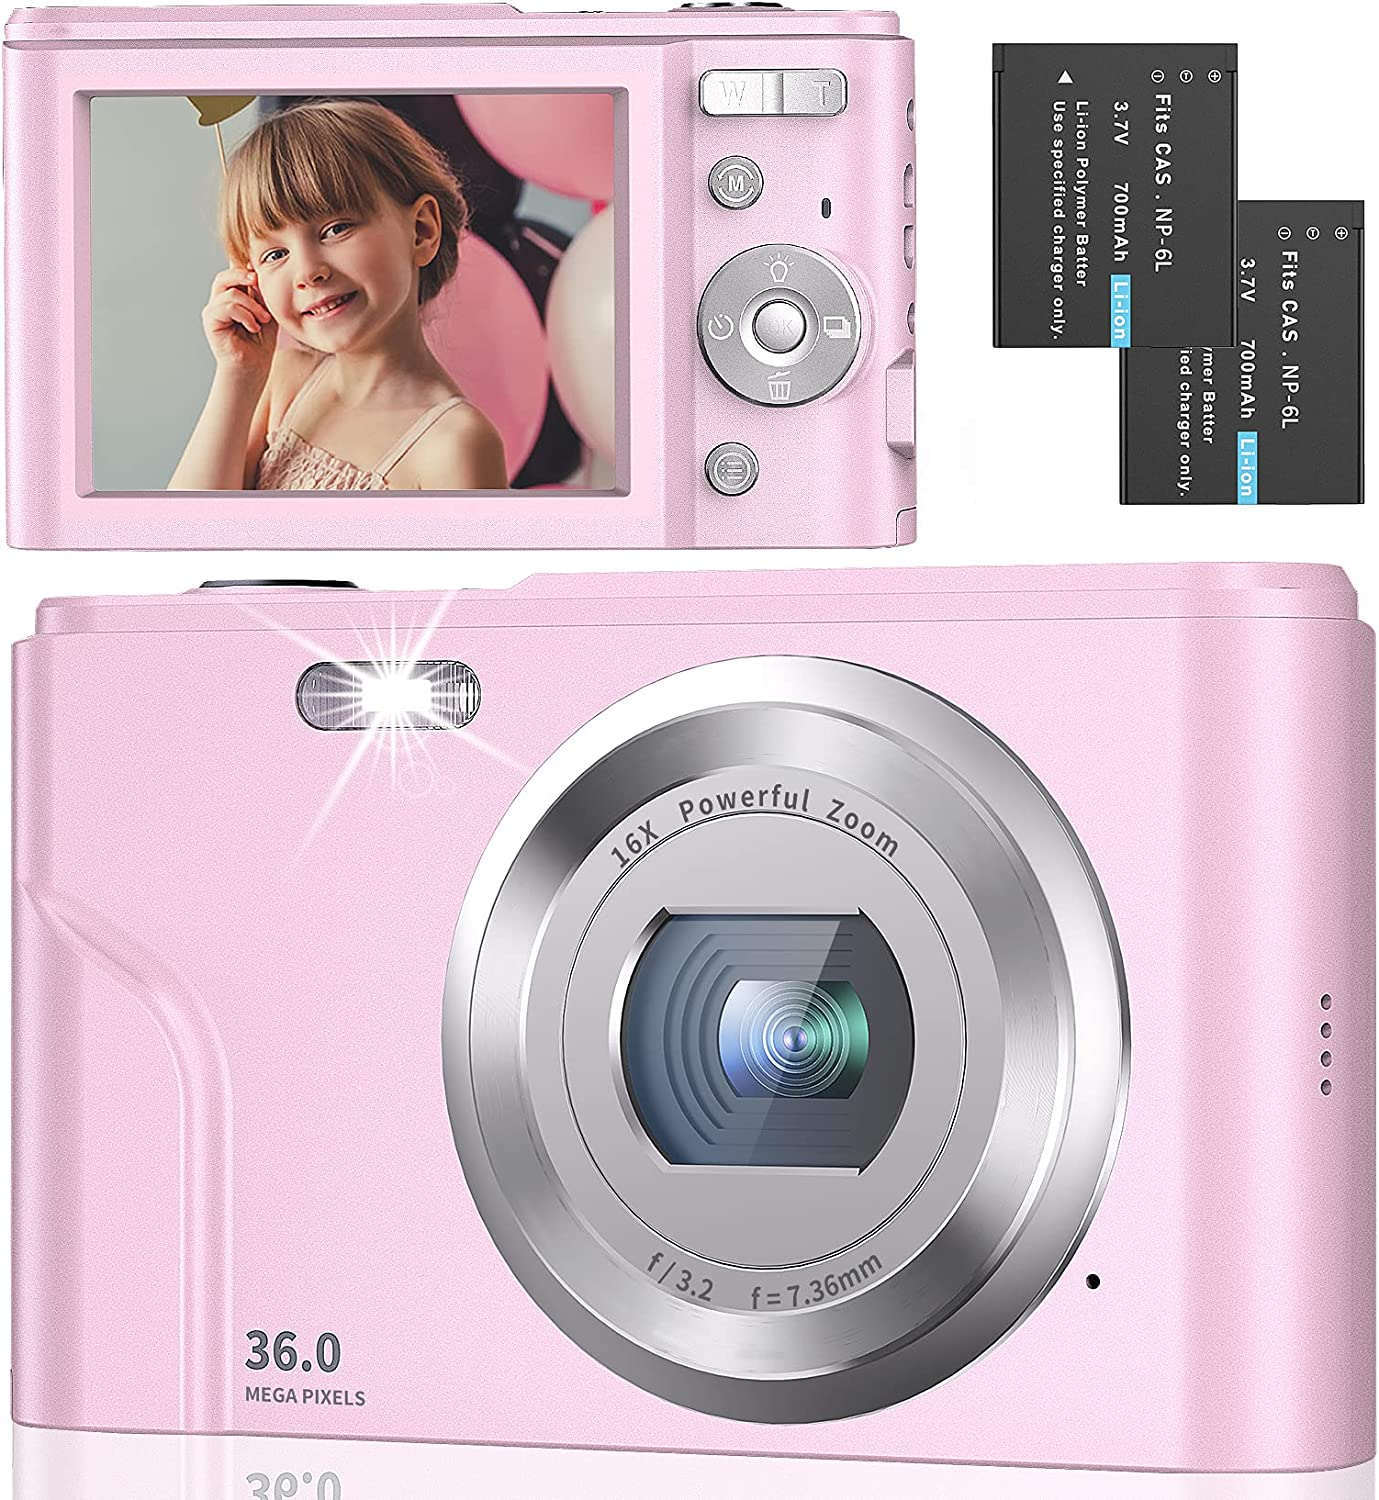 Discount mail order Digital Camera Full HD Clearance SALE Limited time 1080P Vlogging 2.4 Inch 36MP with